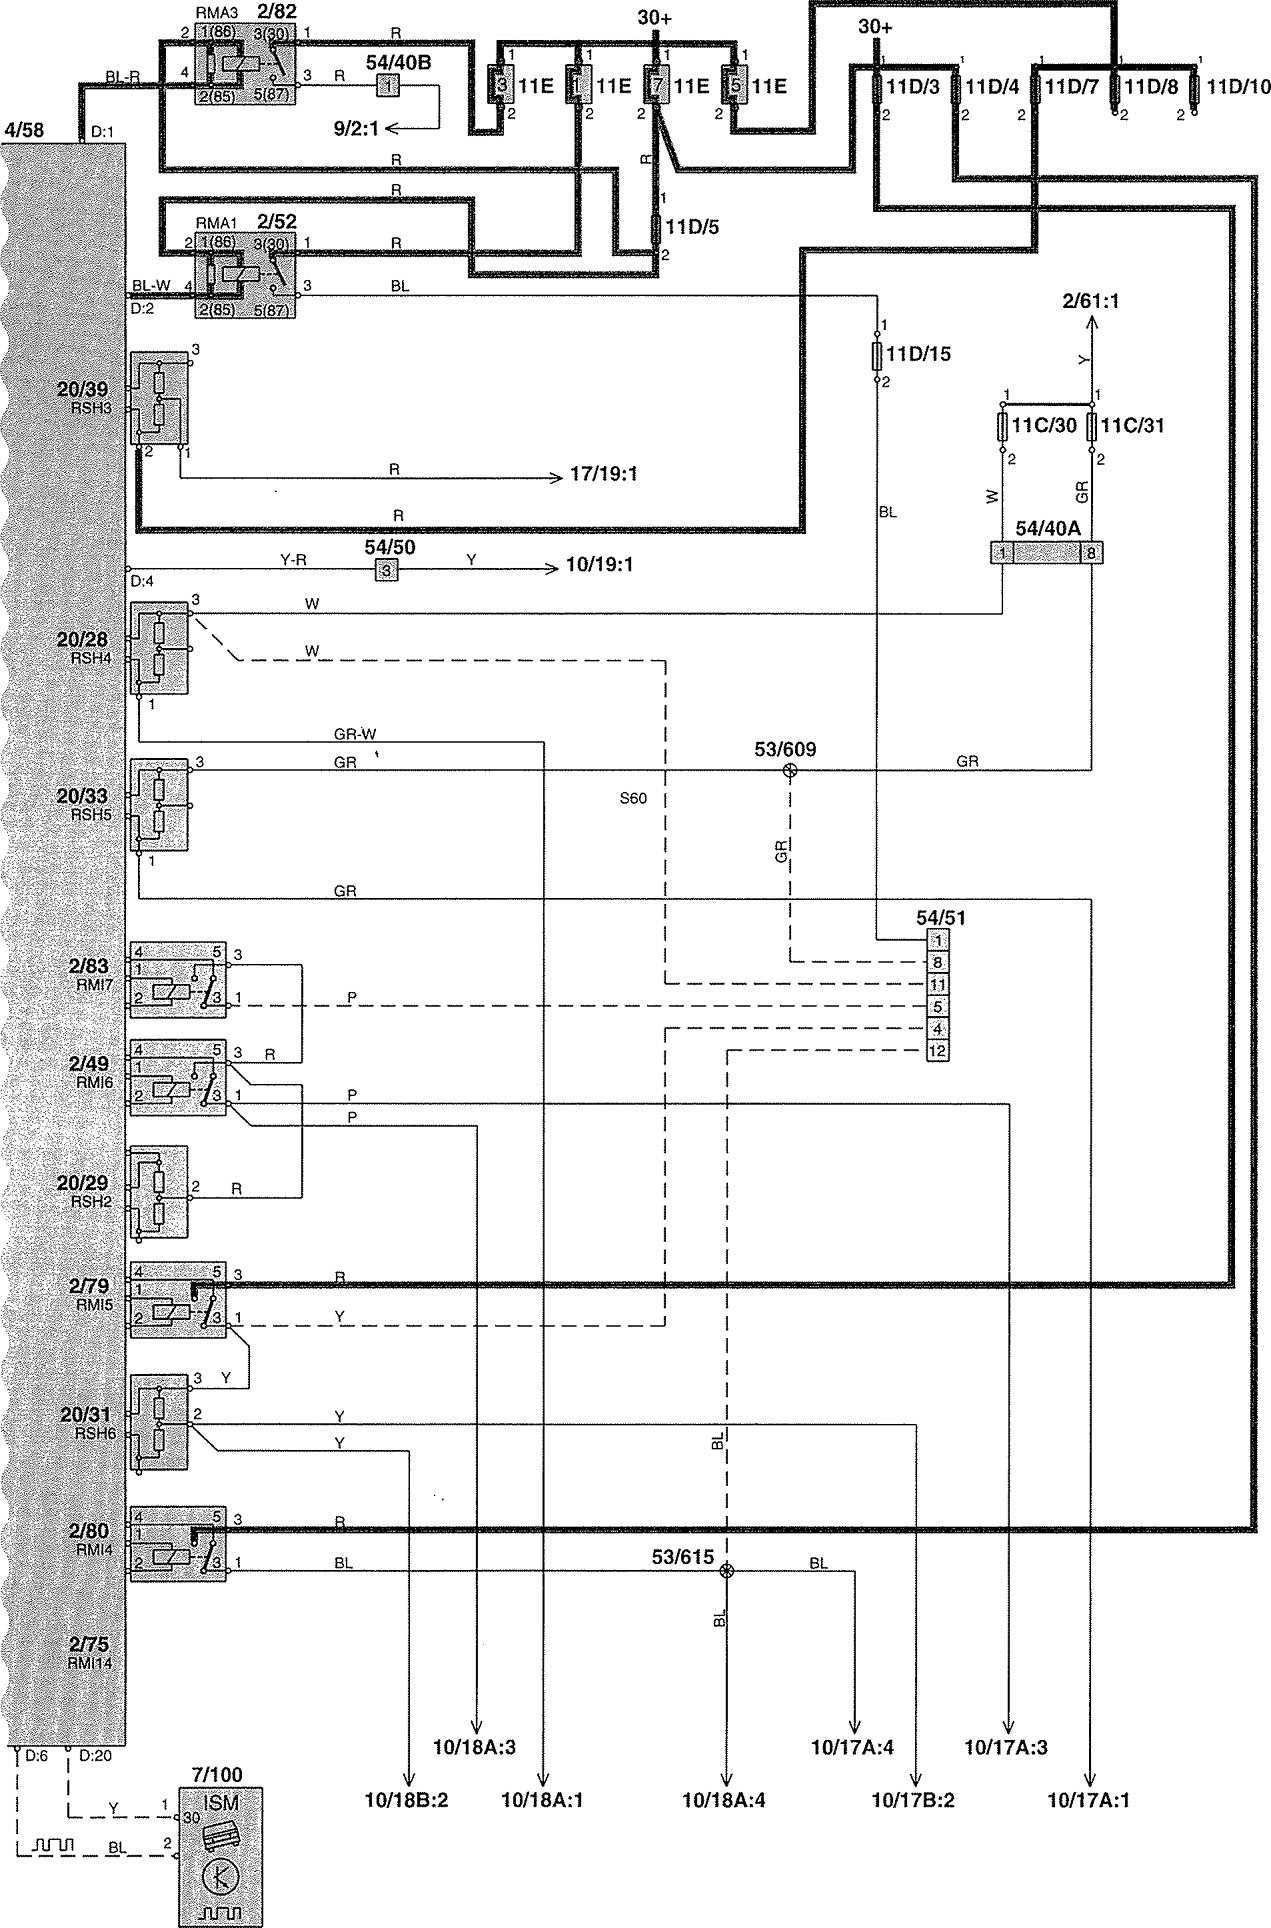 Volvo 2001 Radio Wiring - Wiring Diagram Options gear-authority-a -  gear-authority-a.vimercateseoreno.it | Volvo V70 Ignition Wiring Diagram |  | vimercateseoreno.it